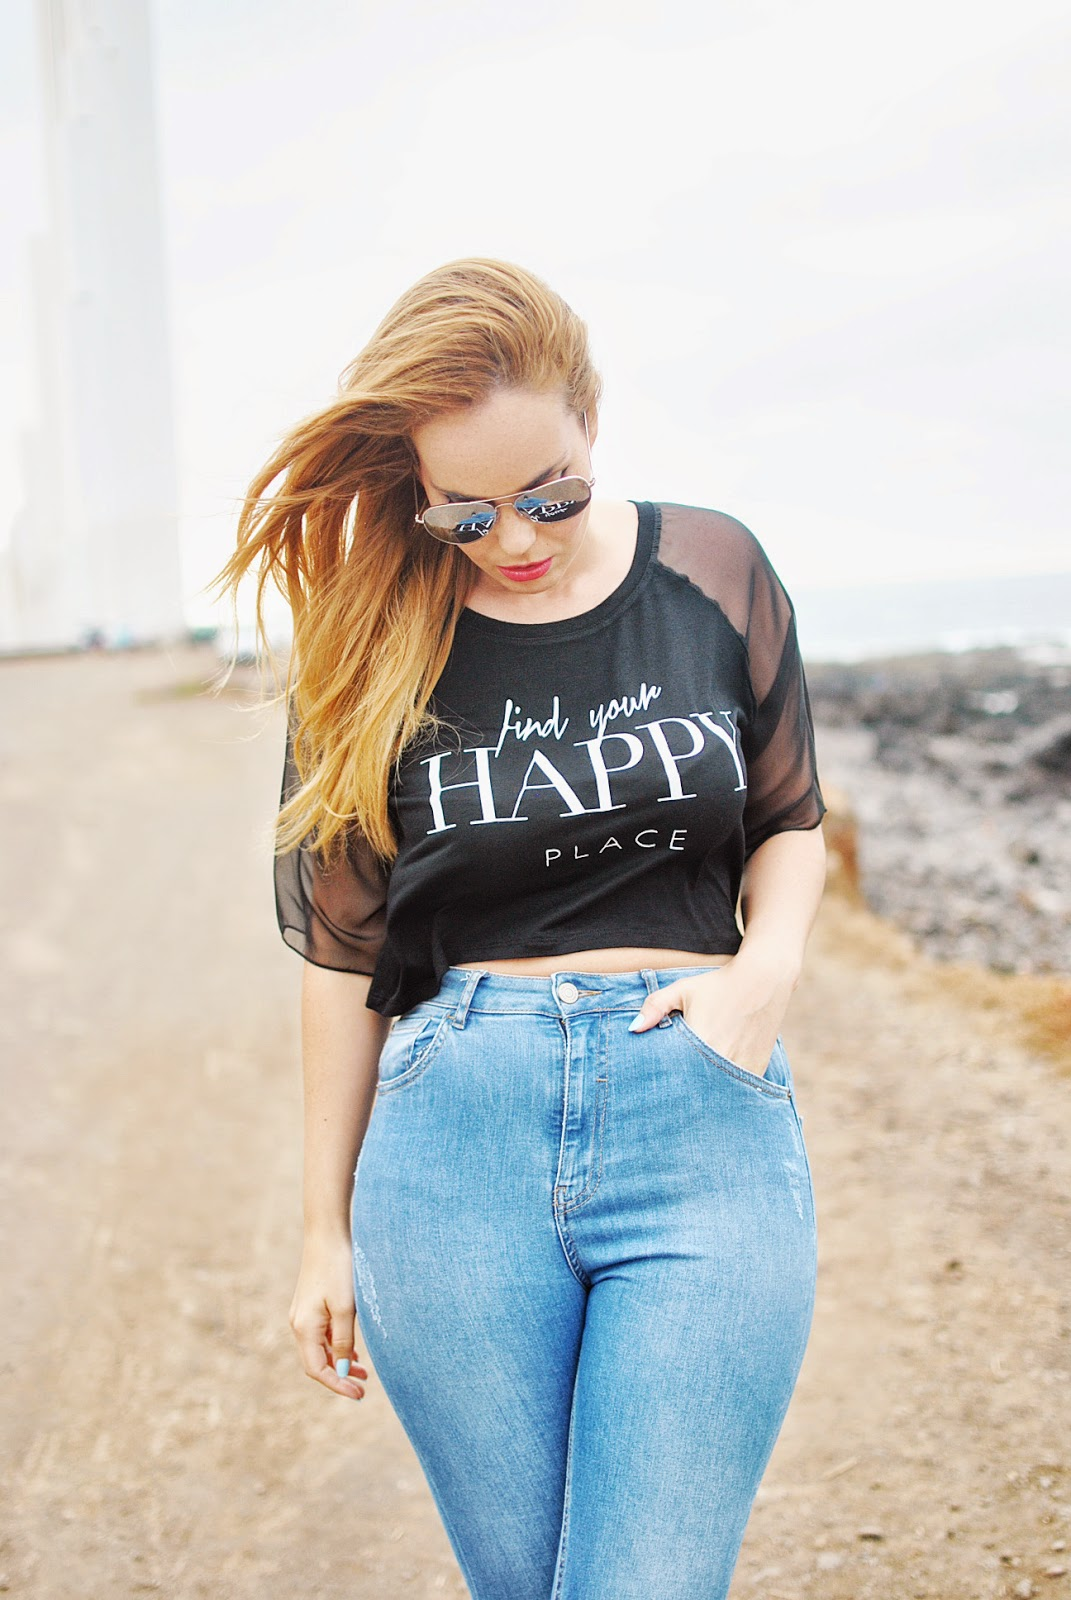 nery hdez, crop top, mom jeans, sunglass junkie, blackfive, silver sunglass